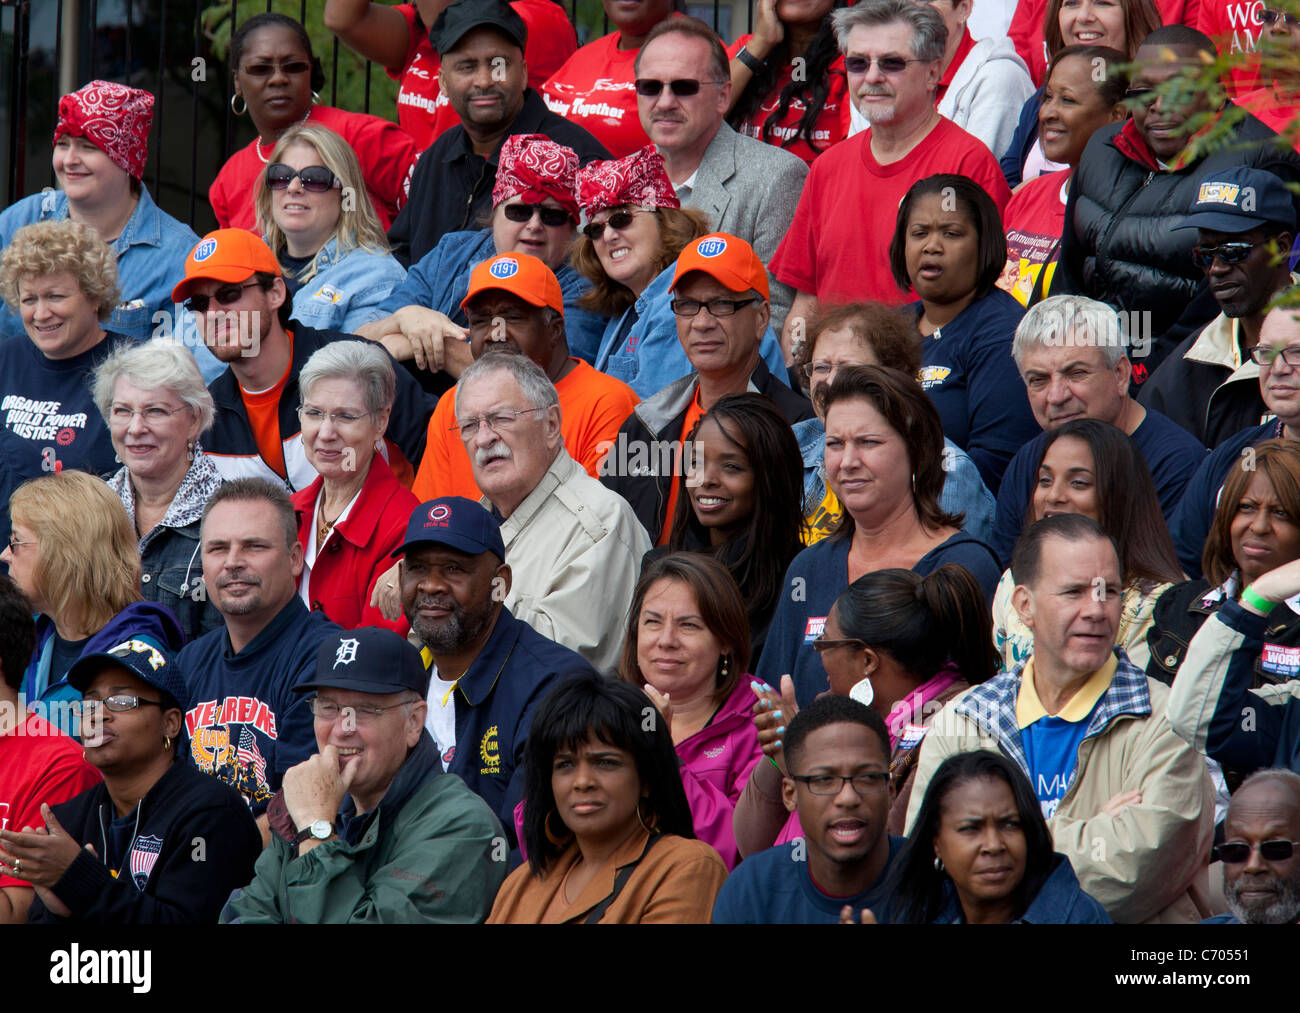 Detroit, Michigan - The crowd at a Labor Day rally waits to hear a speech by President Barack Obama. - Stock Image